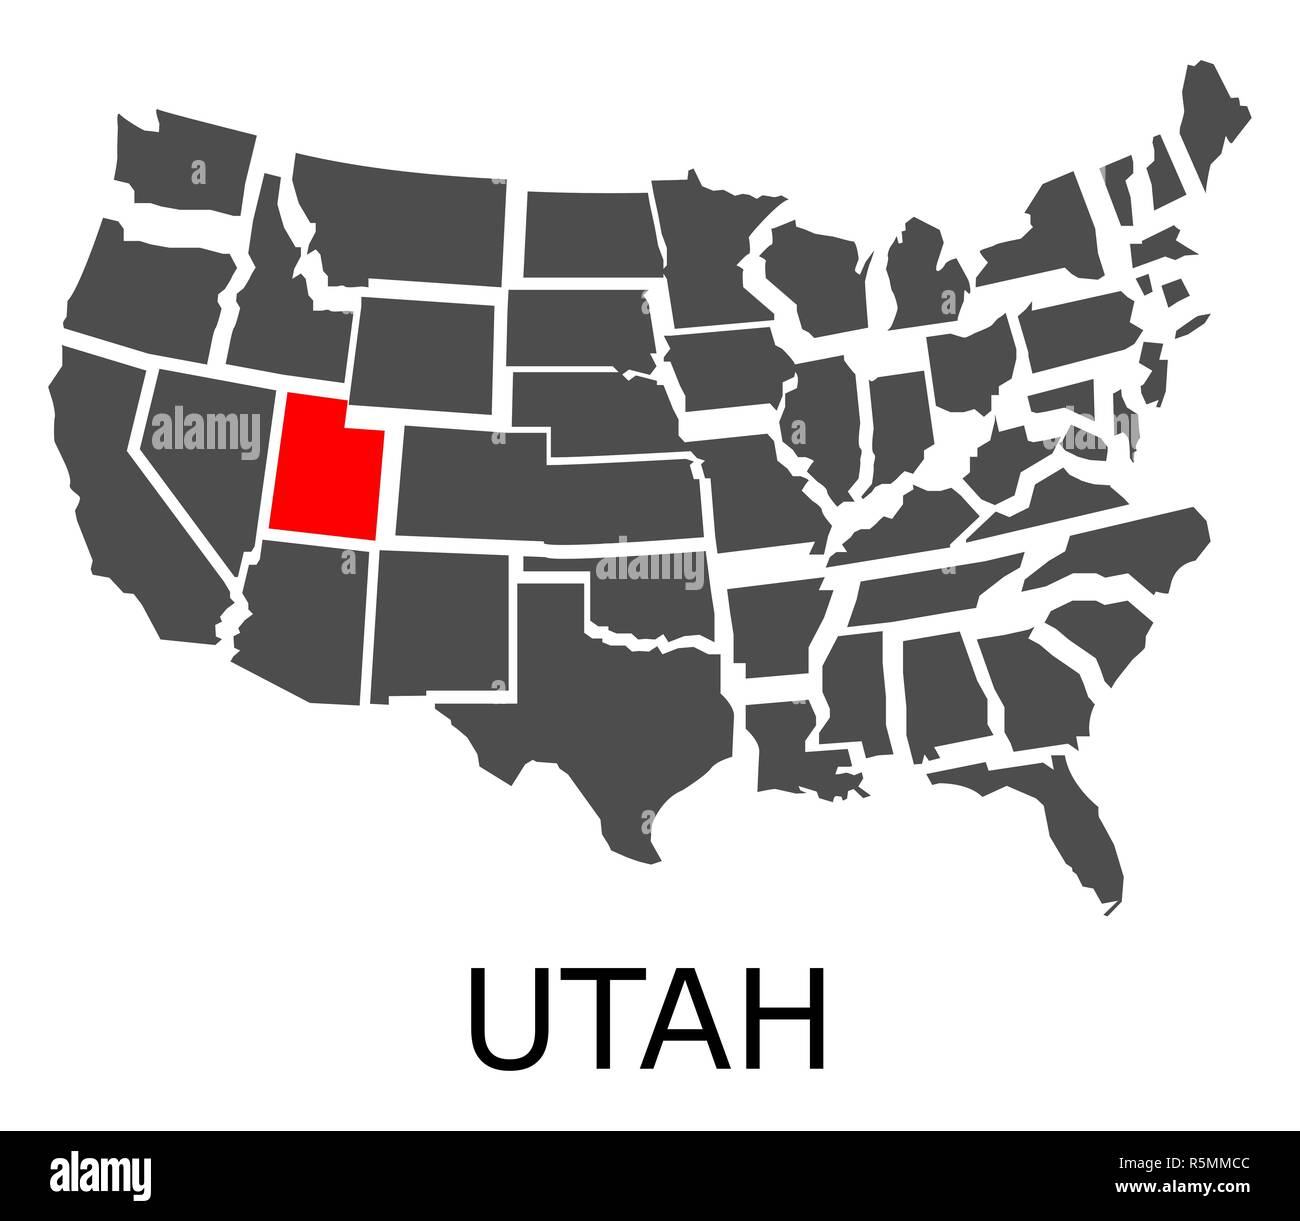 Utah In Usa Map.State Of Utah On Map Of Usa Stock Photo 227263132 Alamy